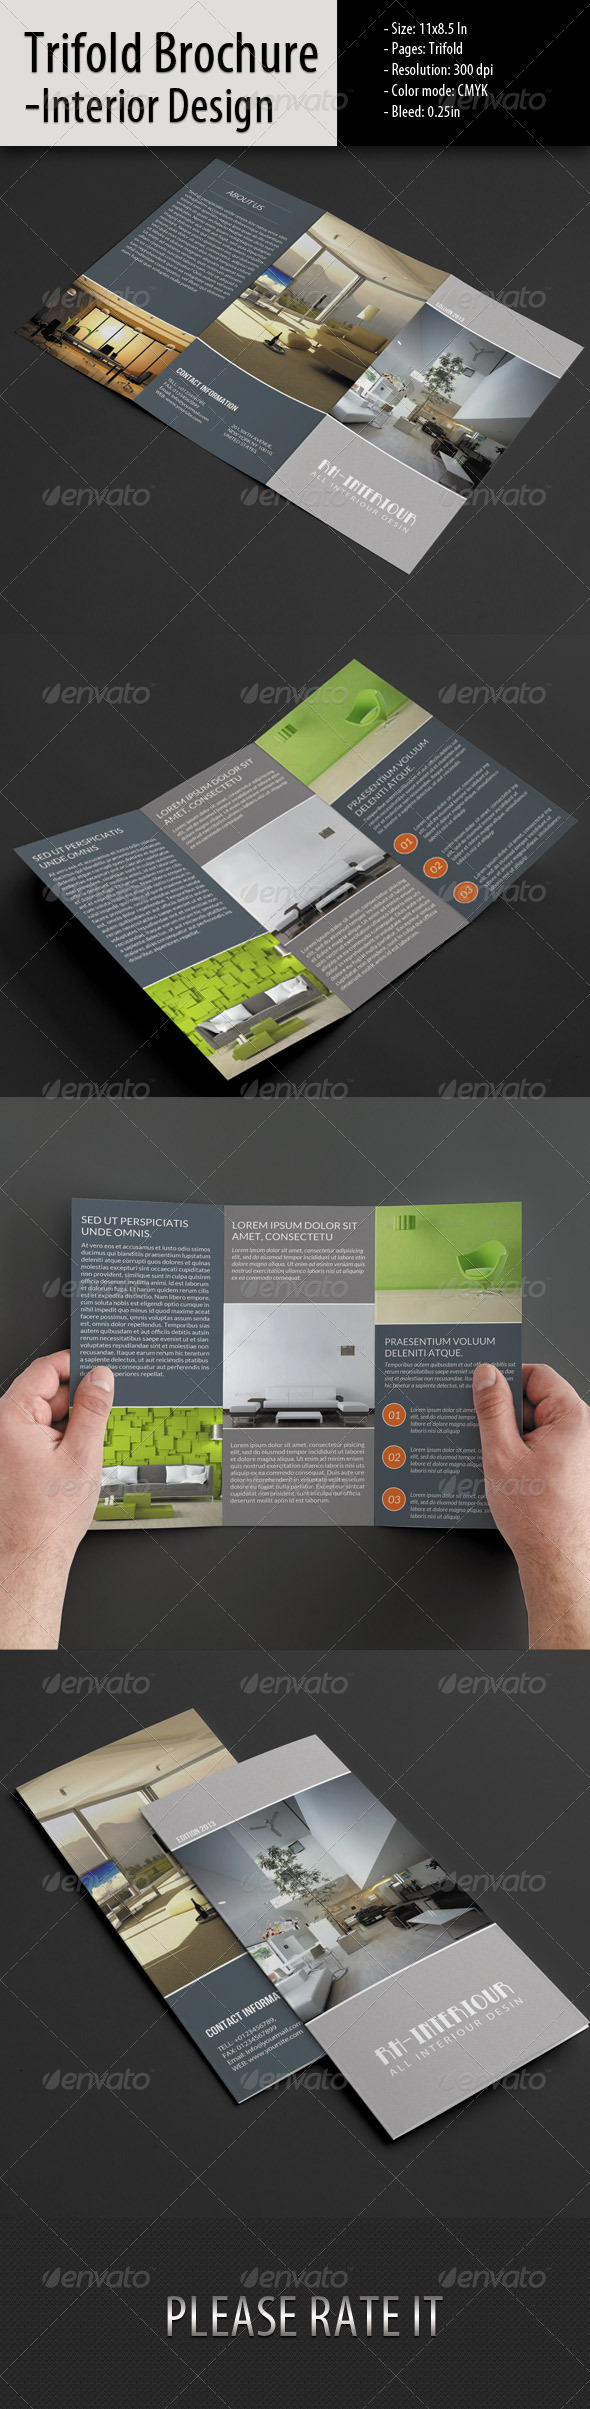 GraphicRiver Trifold Brochure for Interior Design 5499700